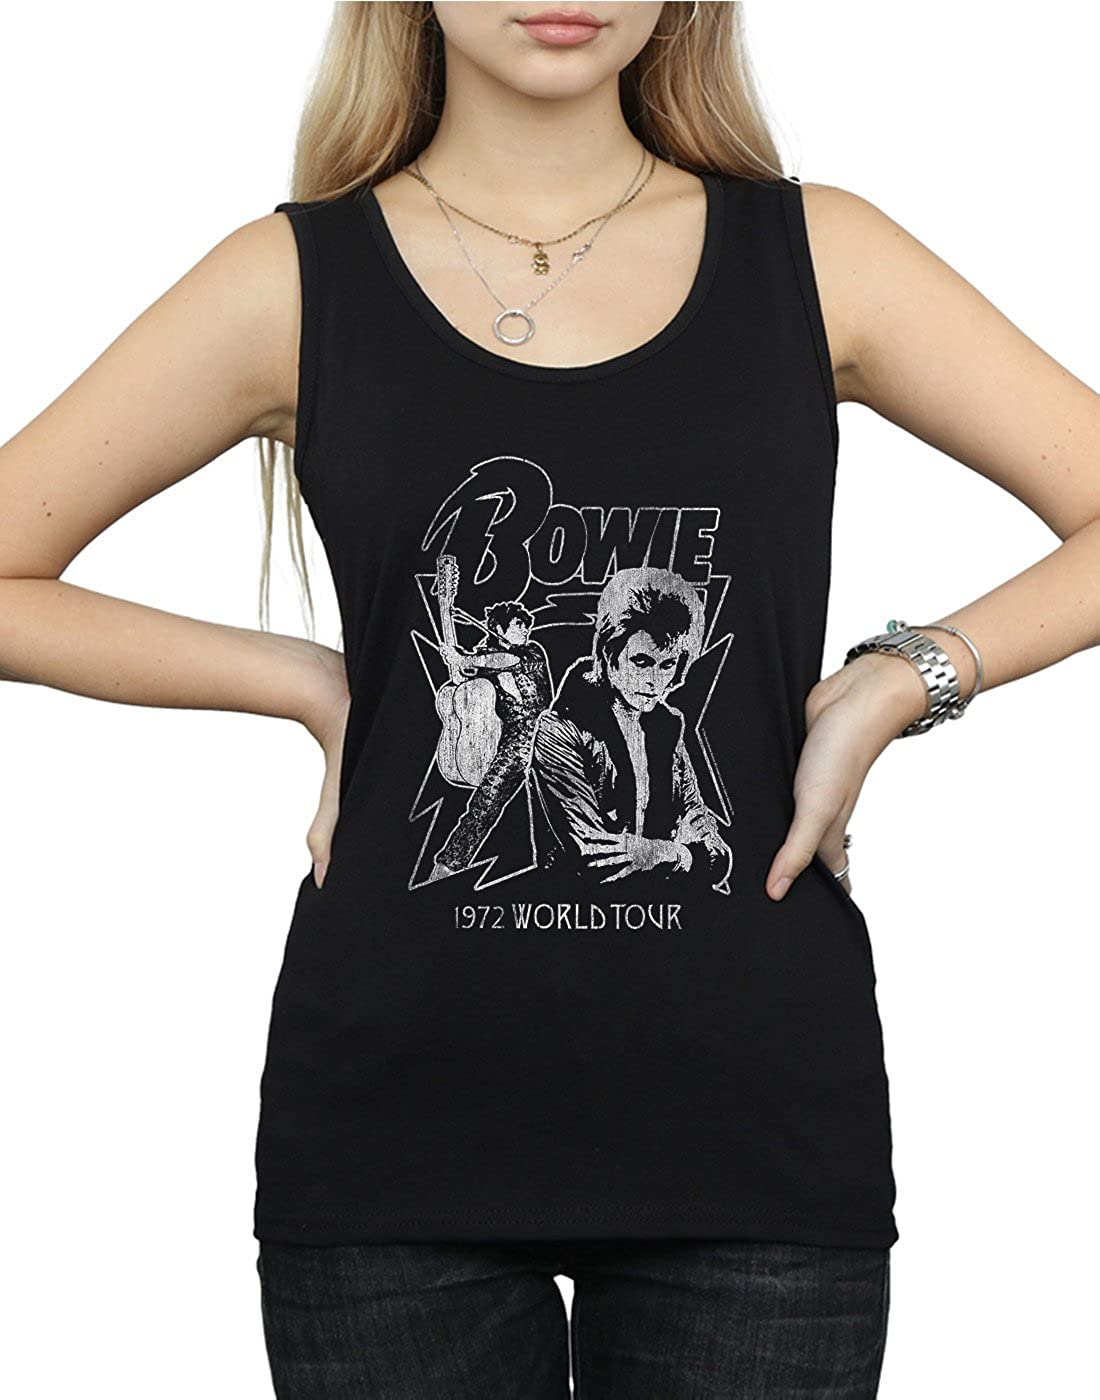 David Bowie Womens Mono 1972 World Tour Tank Top